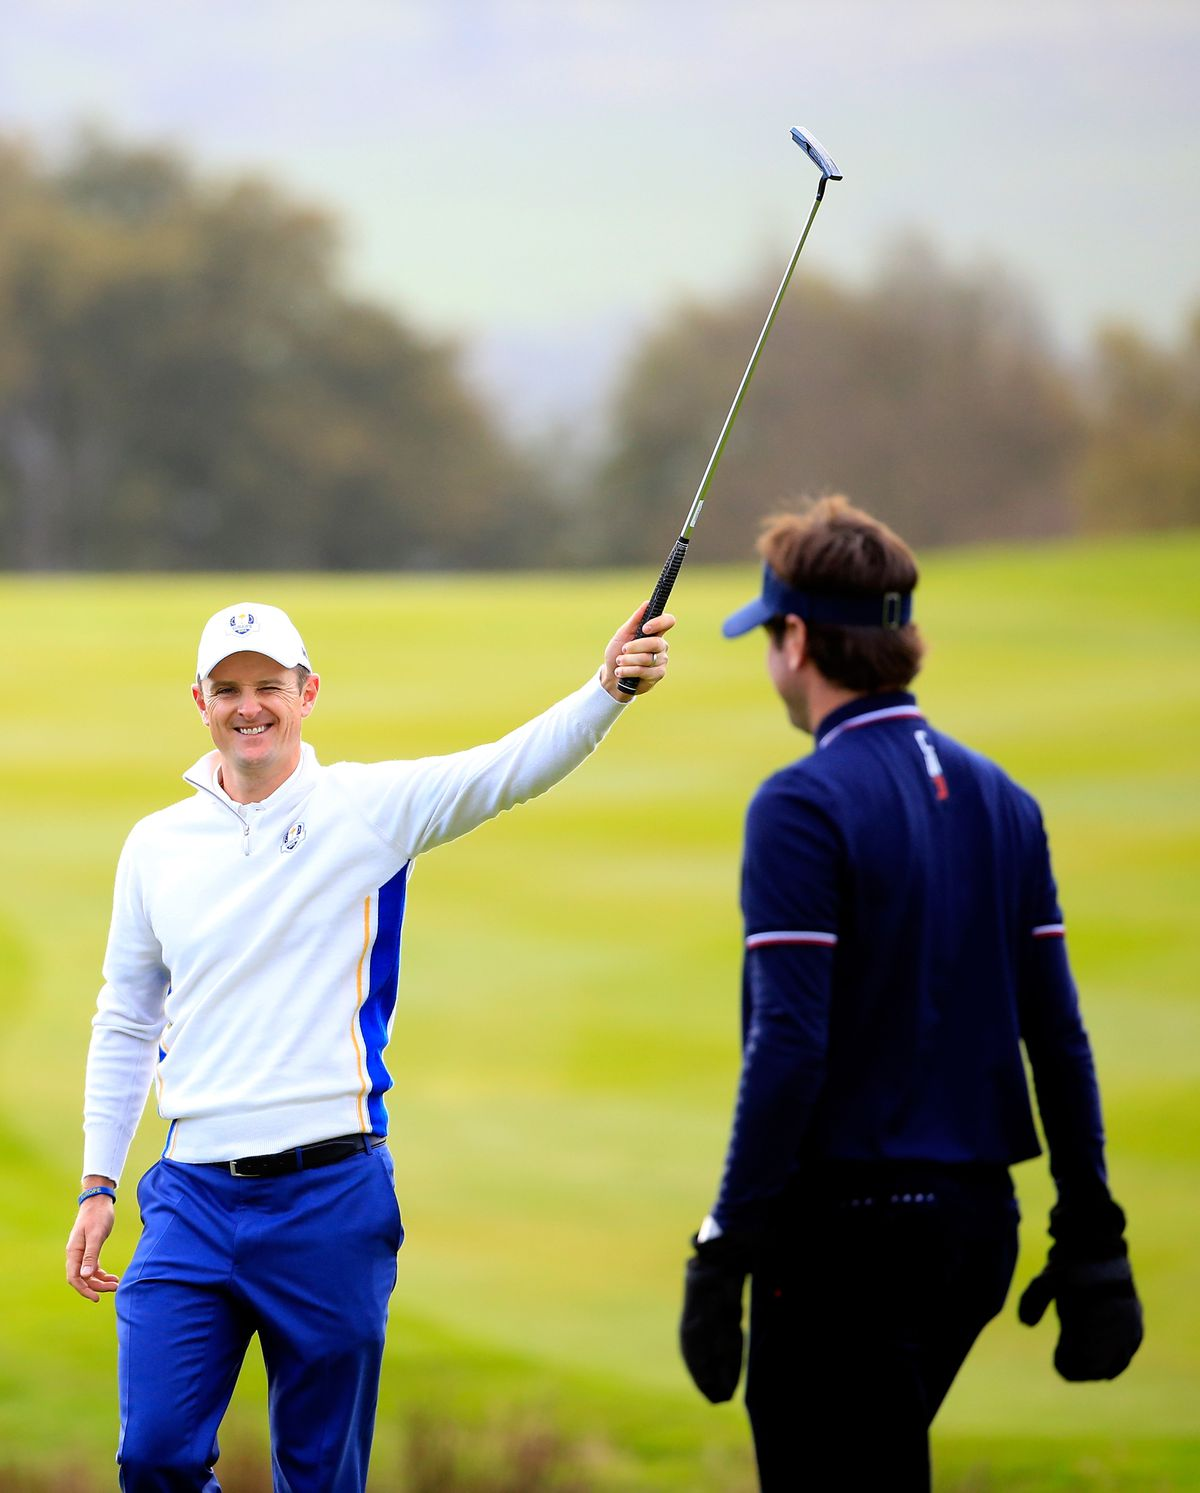 Find 2018 Ryder Cup Scoring and Leaderboard information from the action at Le Golf National Paris France Sept 2530